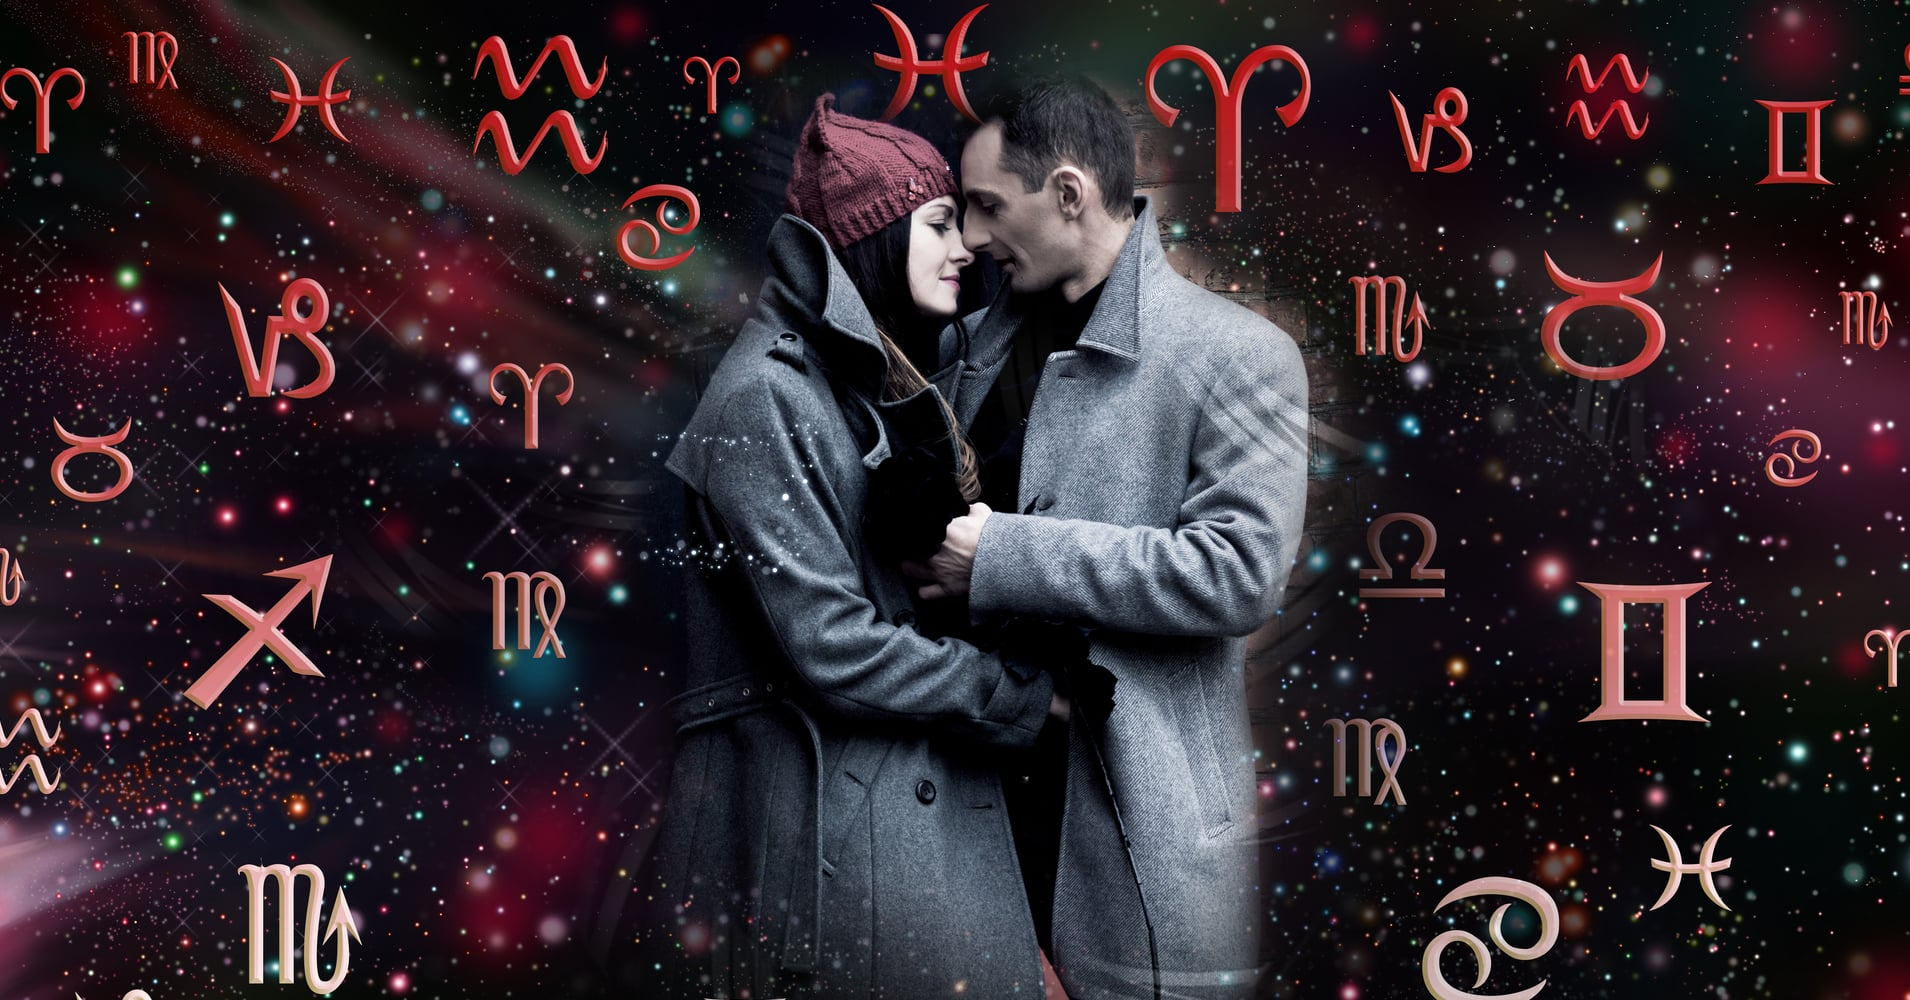 5 Ways to Use Astrology to Find Your Soulmate